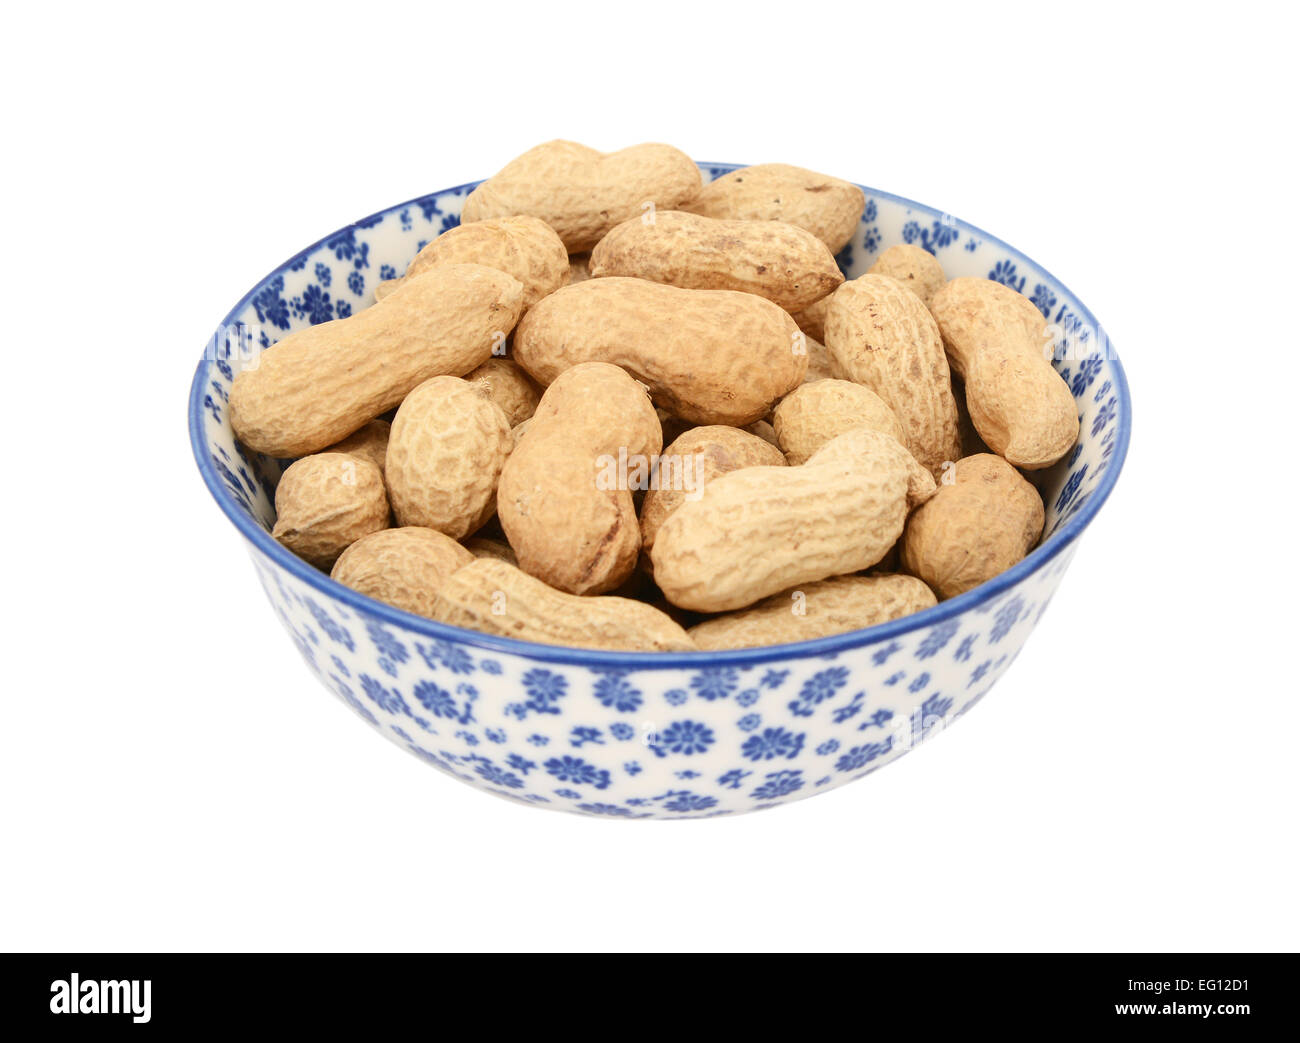 Monkey nuts in a blue and white porcelain bowl with a floral design, isolated on a white background - Stock Image